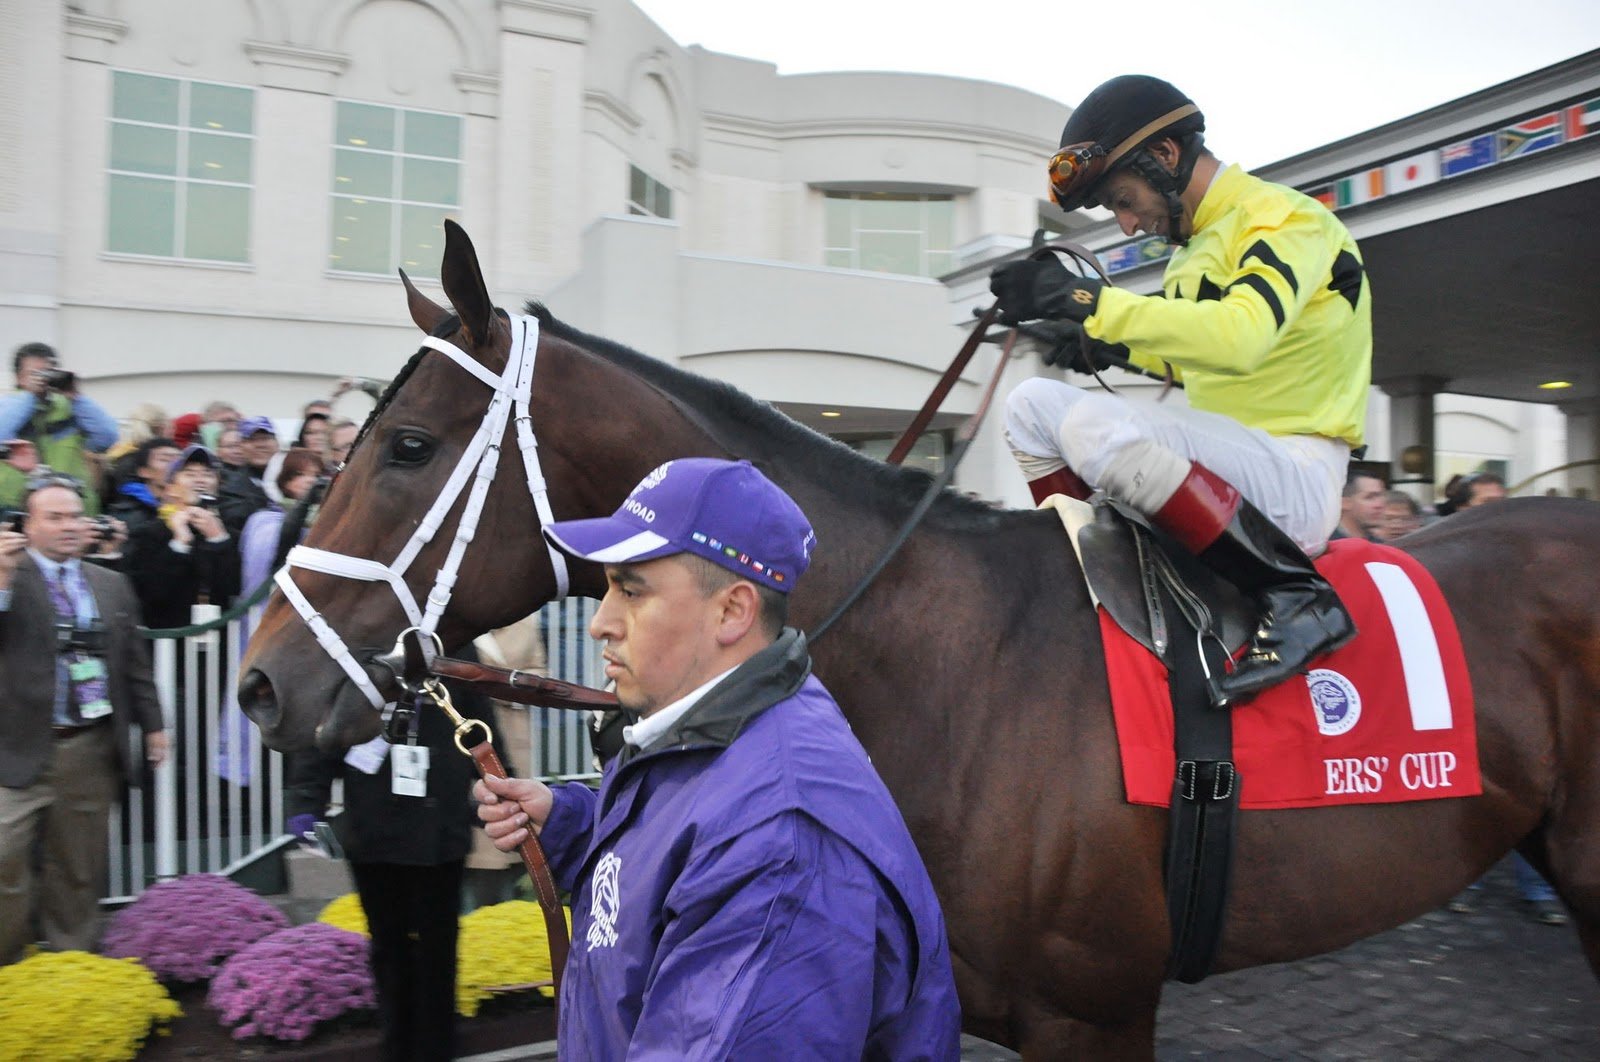 Breeders Cup Unkind To Va Breds Virginia Thoroughbred